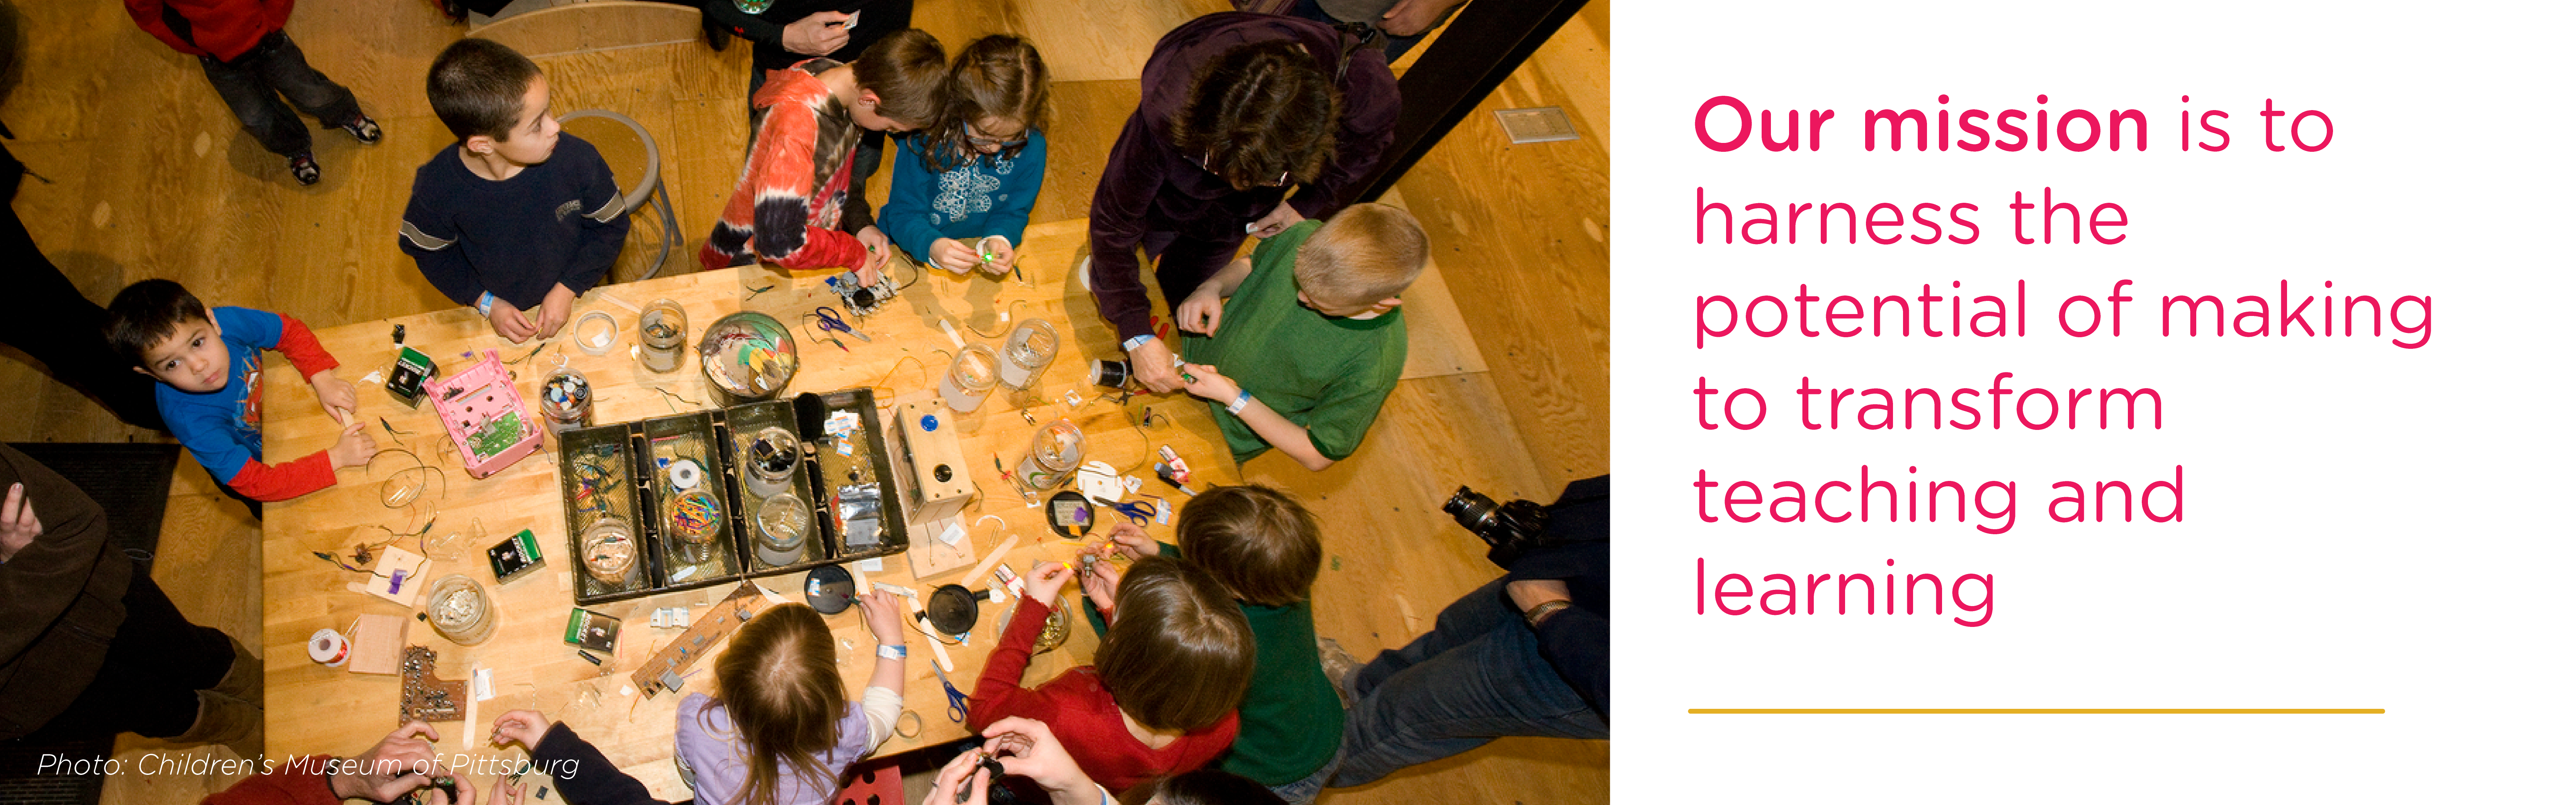 Our mission is to harness the potential of making to transform teaching and learning